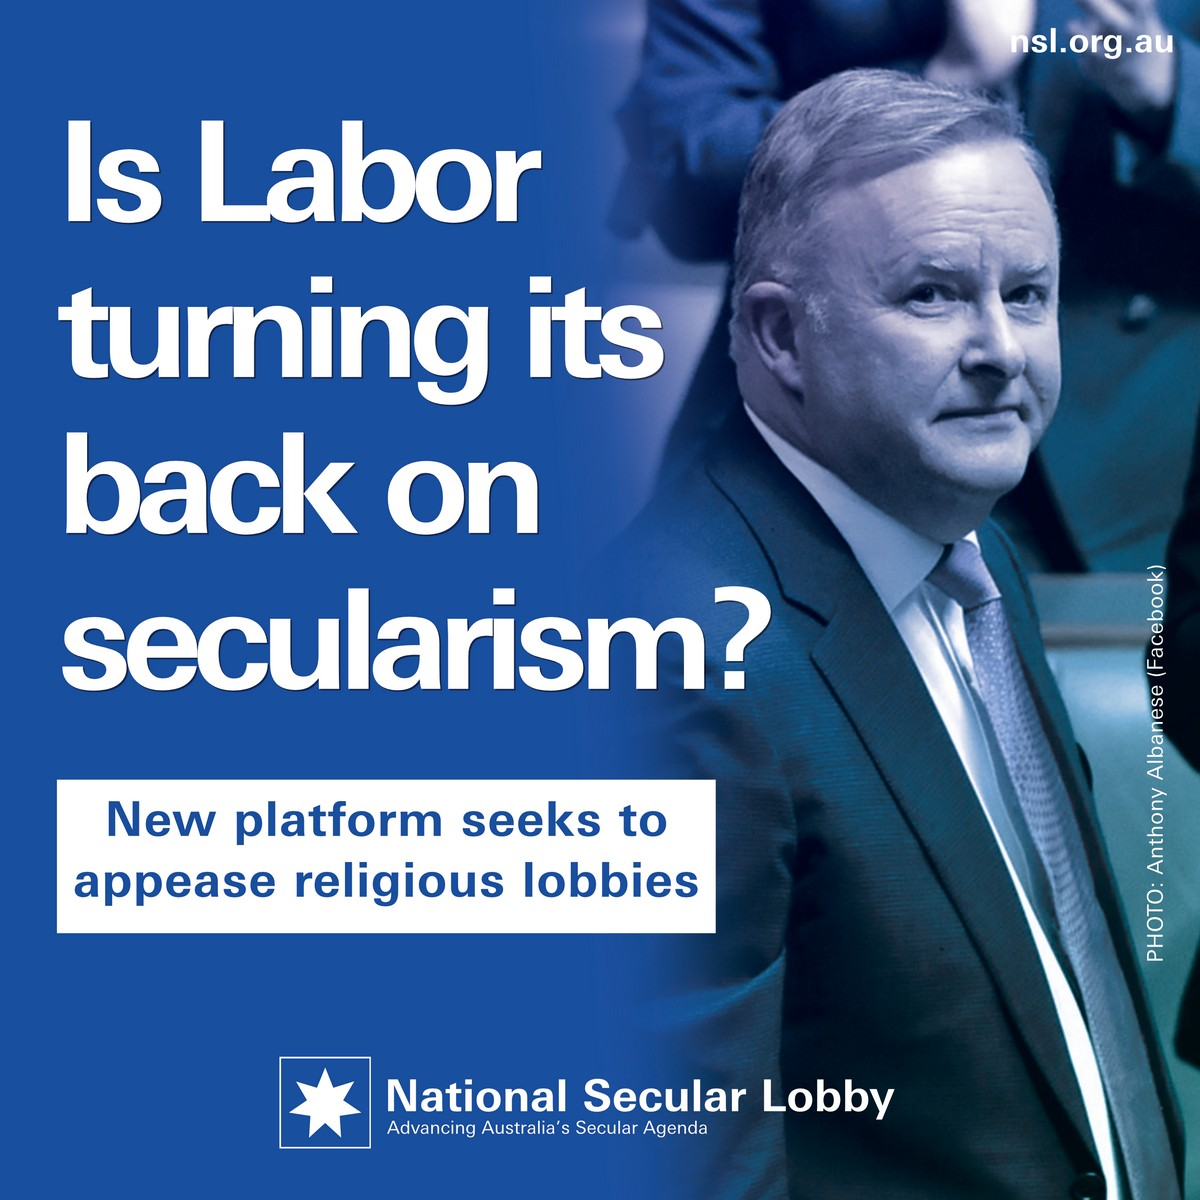 Is Labor turning its back on secularism?